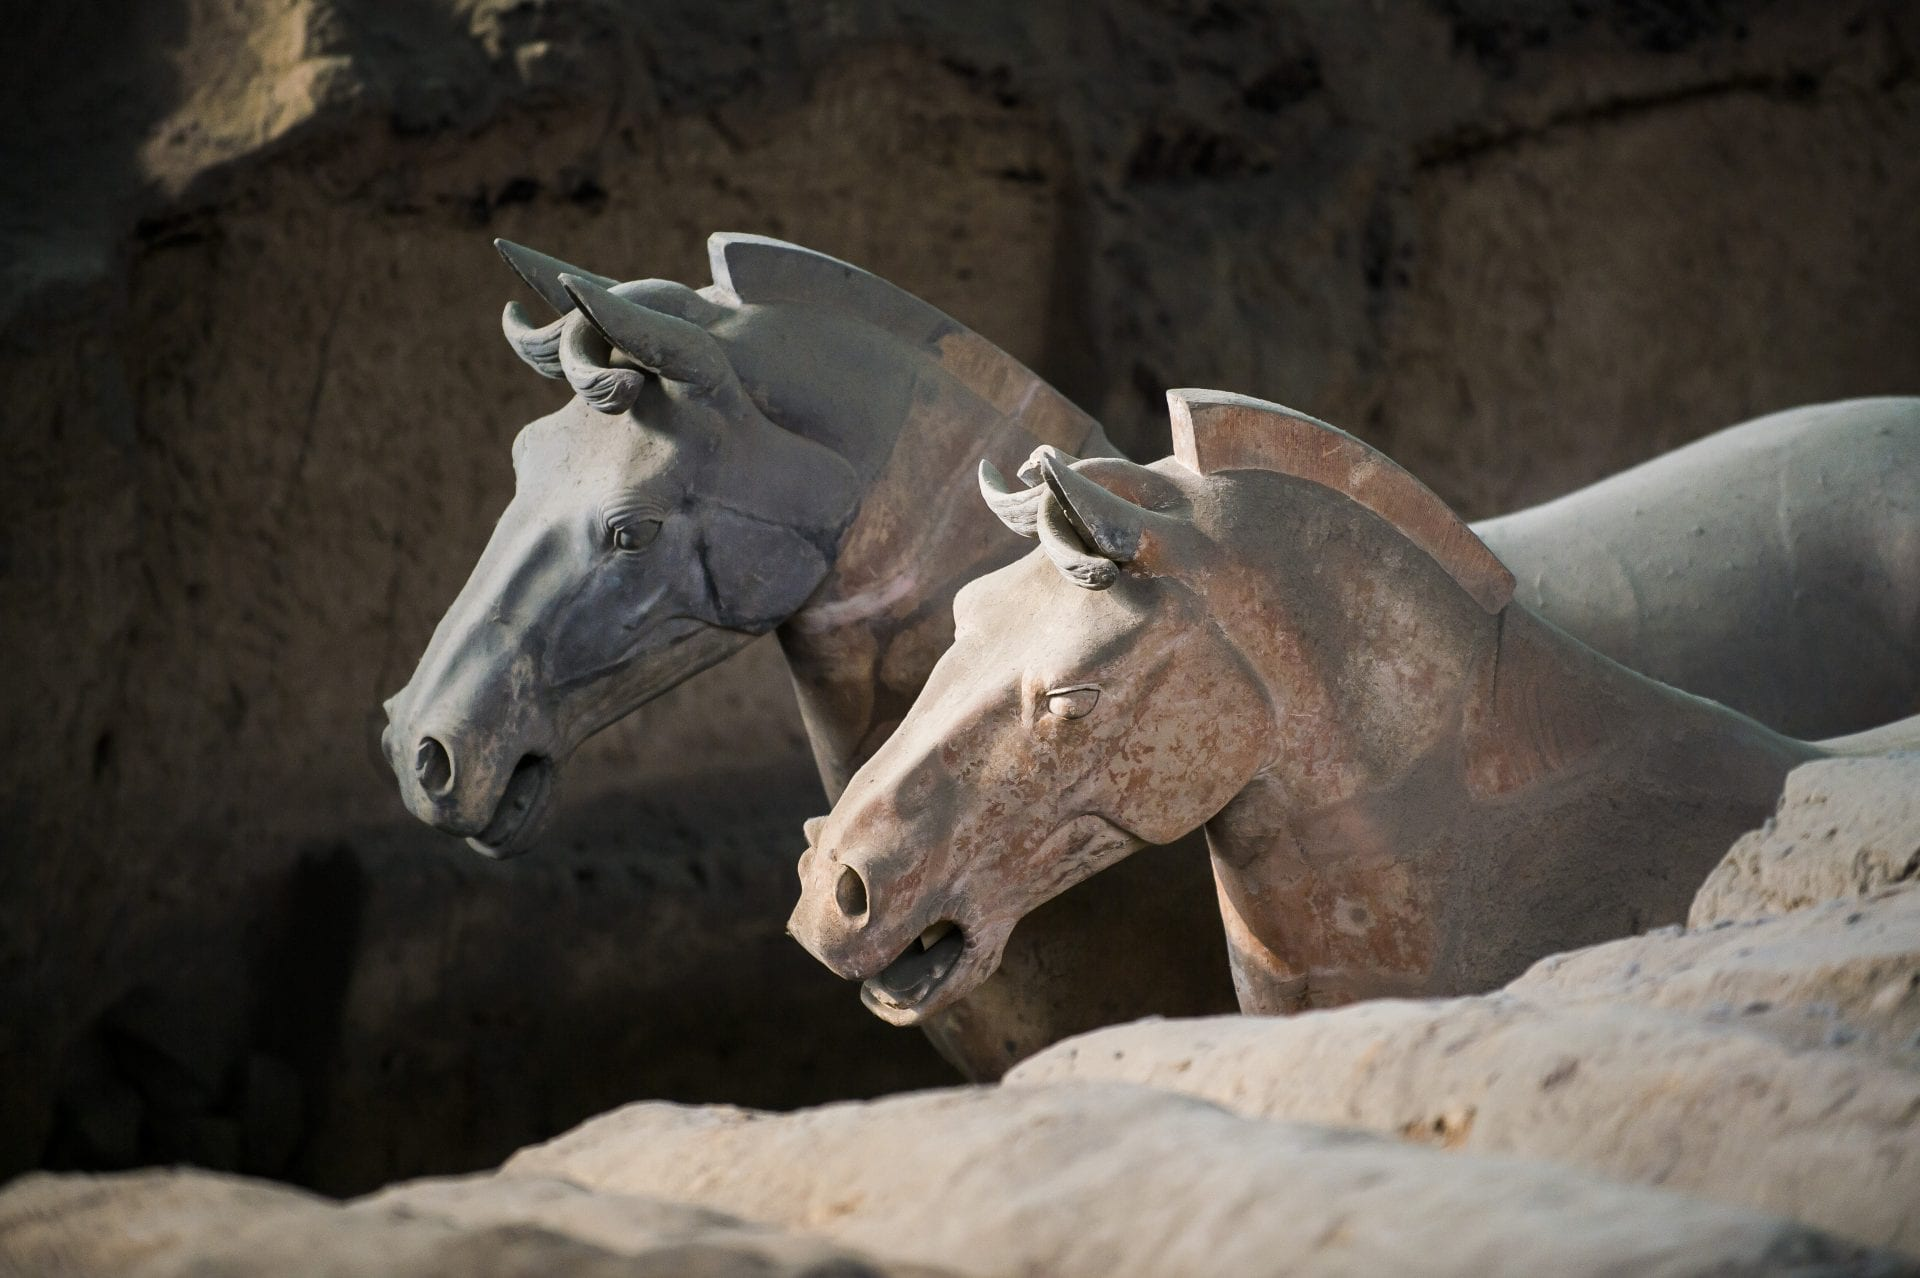 Terracotta-warrior-army-Emperor-Qin-Shi-Huang-first-emperor-of-China-horses-animals